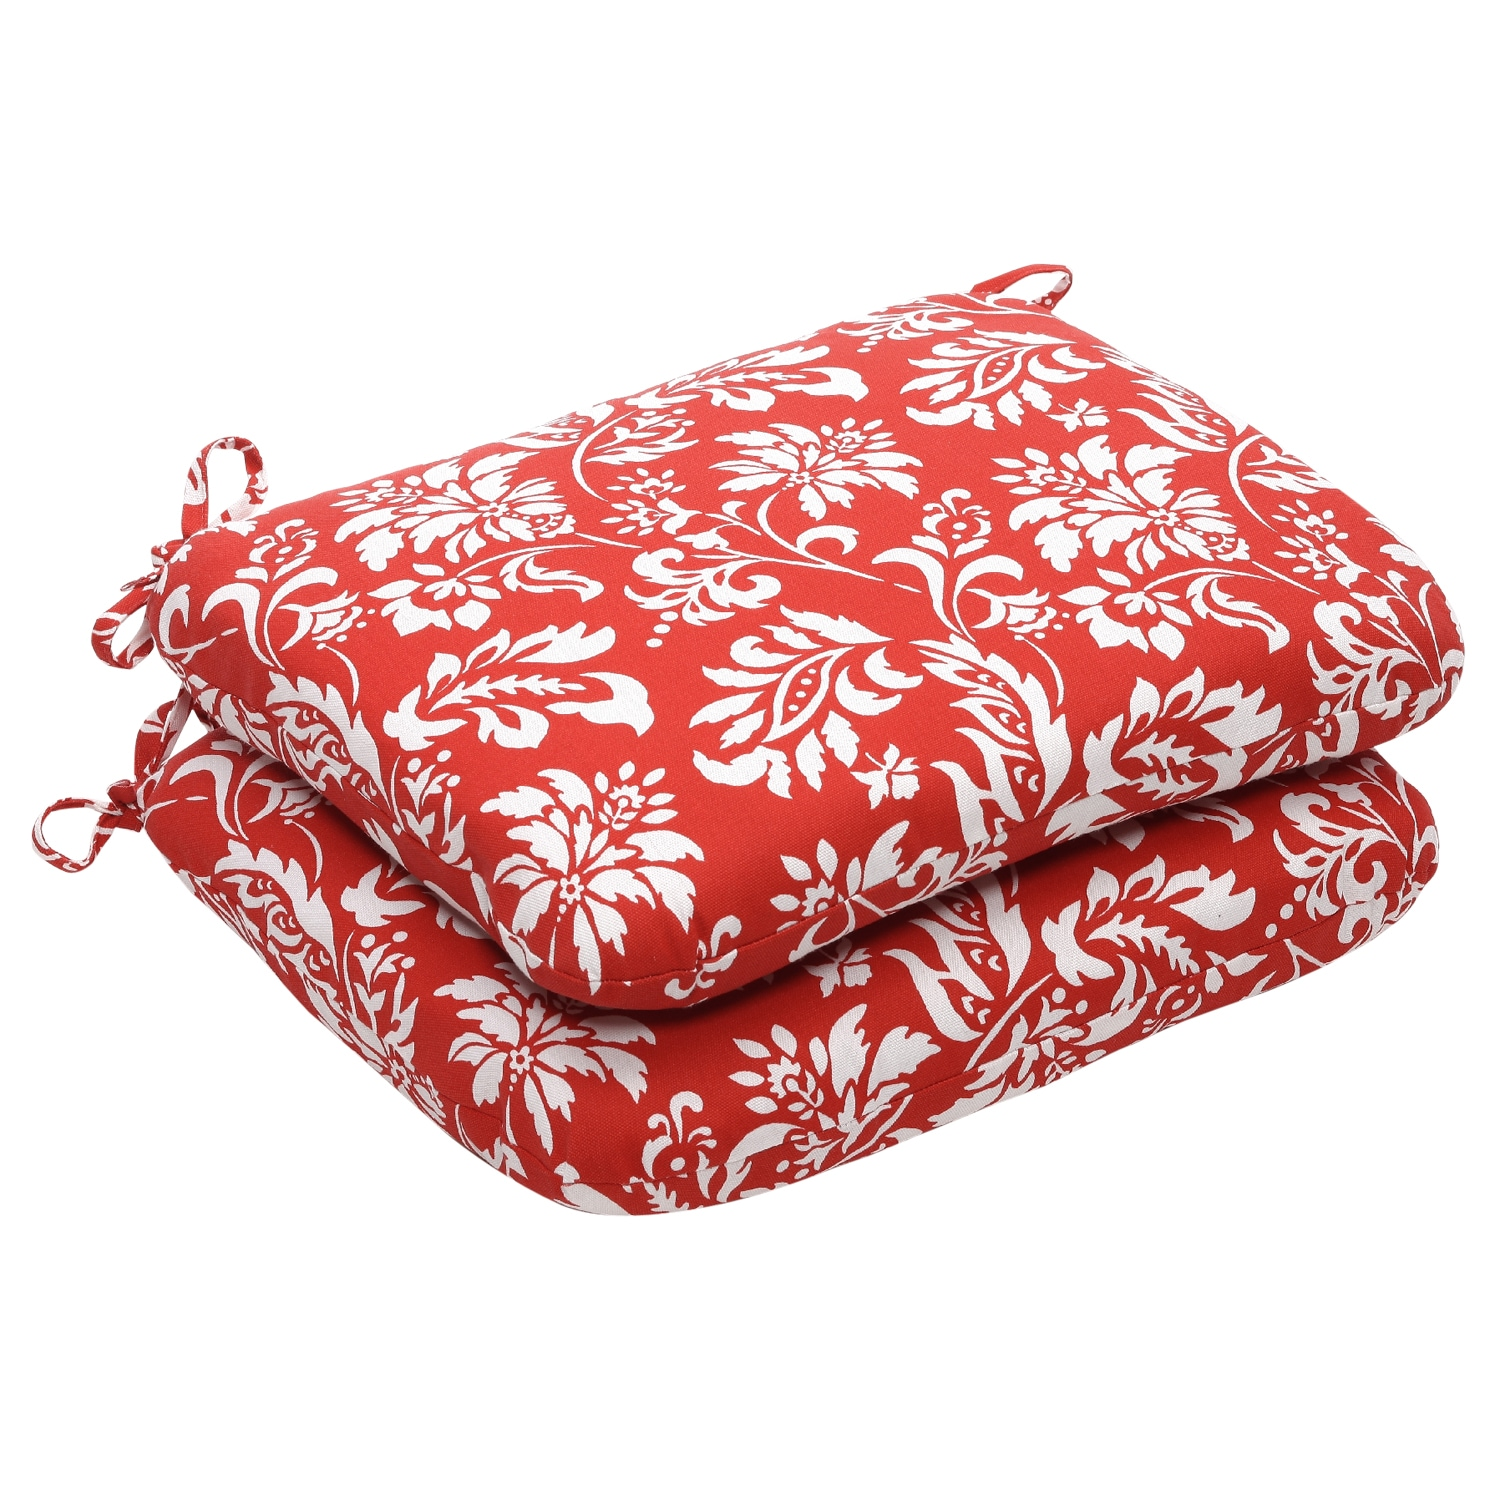 Outdoor Red/White Floral Rounded Seat Cushion (Set of 2)